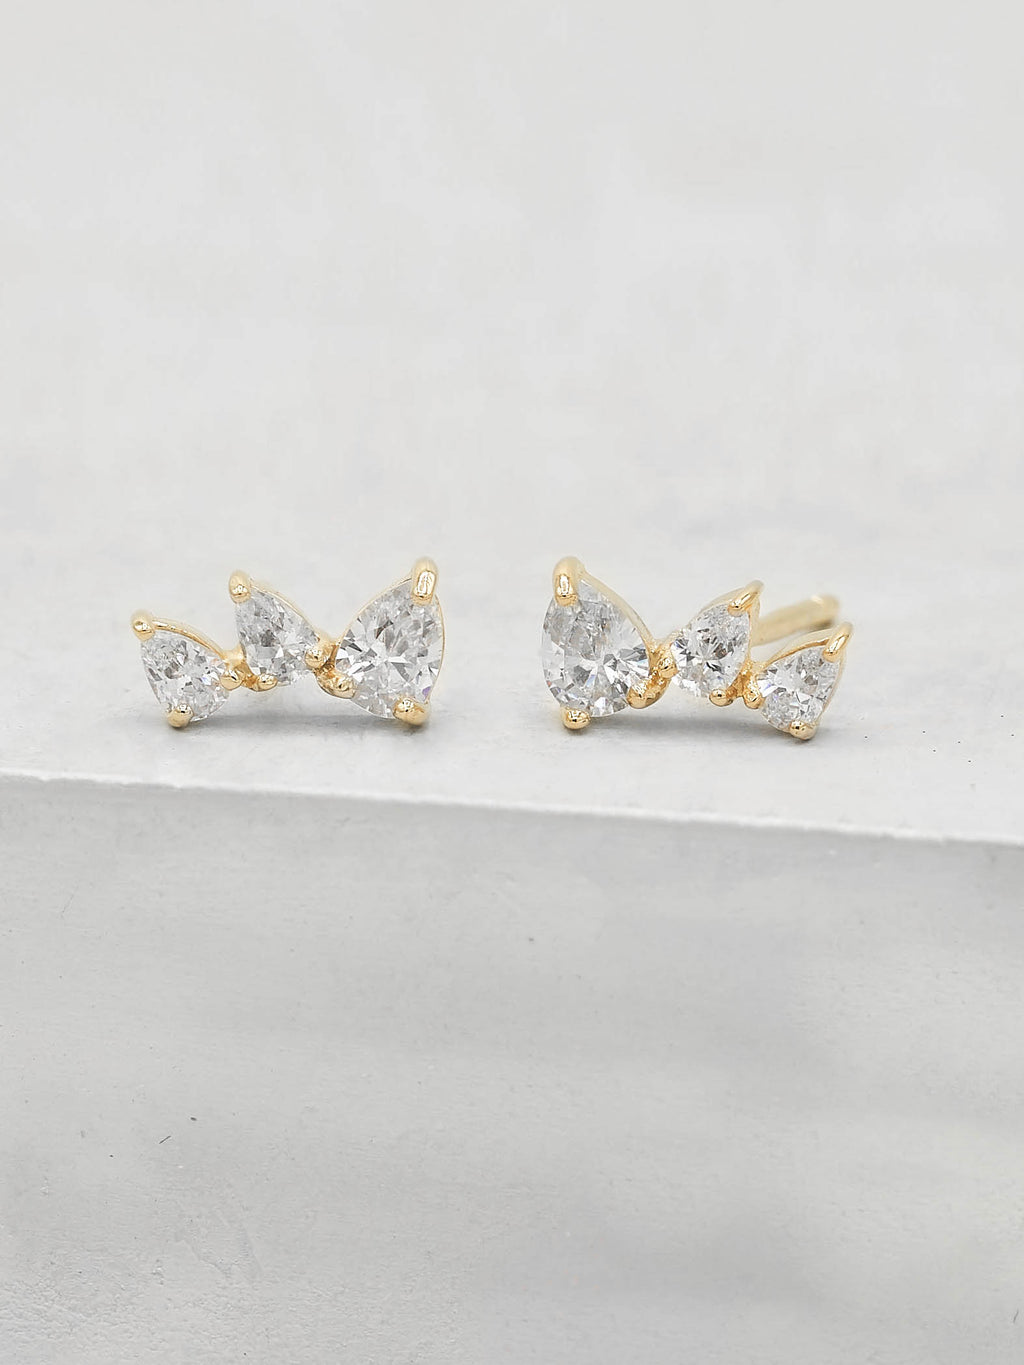 3 Stones Pear Shape Cubic Zirconia CZ White color Stud Earrings by The Faint Hearted jewelry